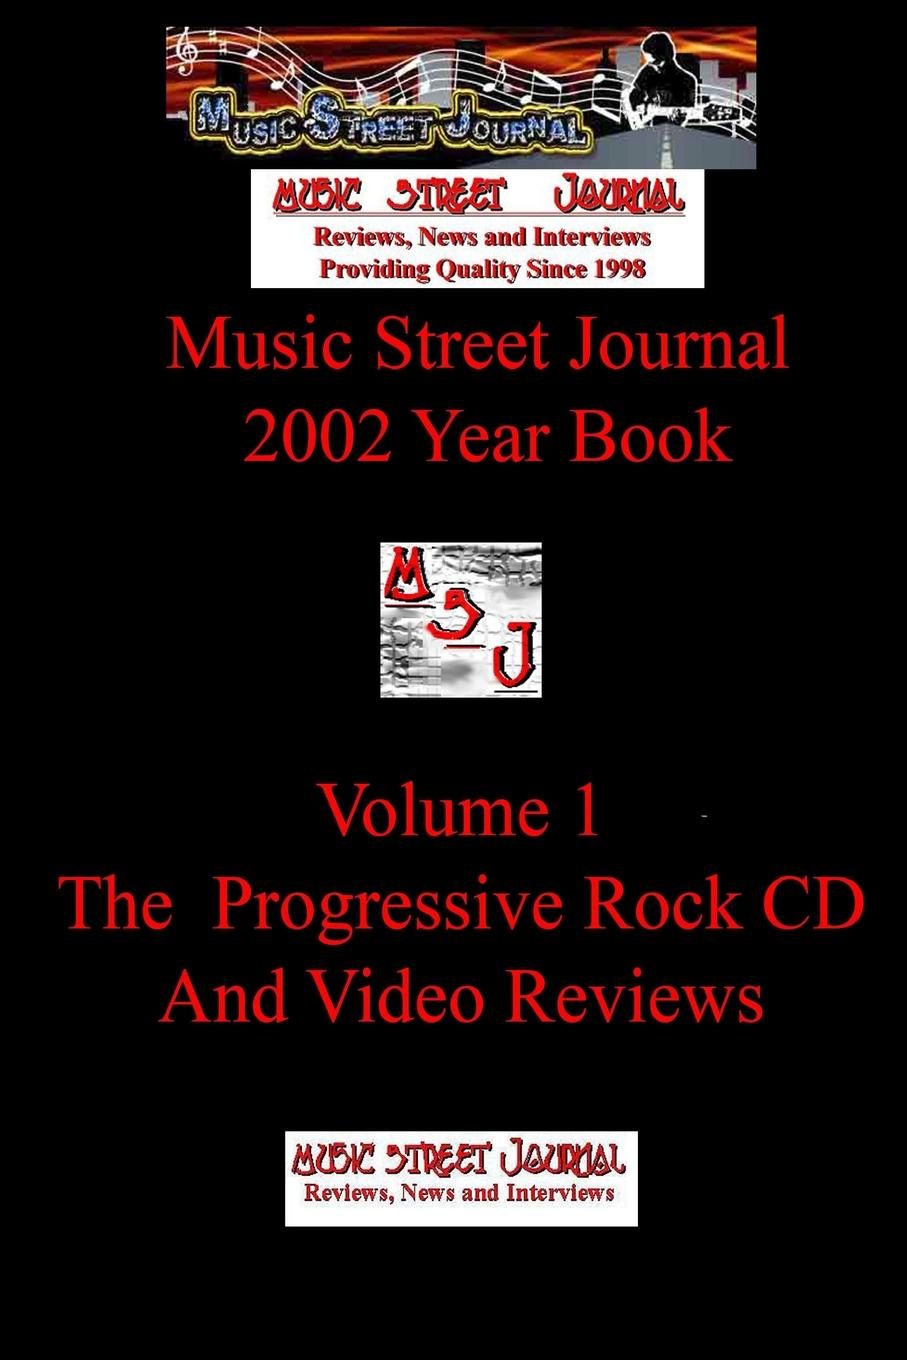 Gary Hill Music Street Journal. 2002 Year Book: Volume 1 - The Progressive Rock CD and Video Reviews